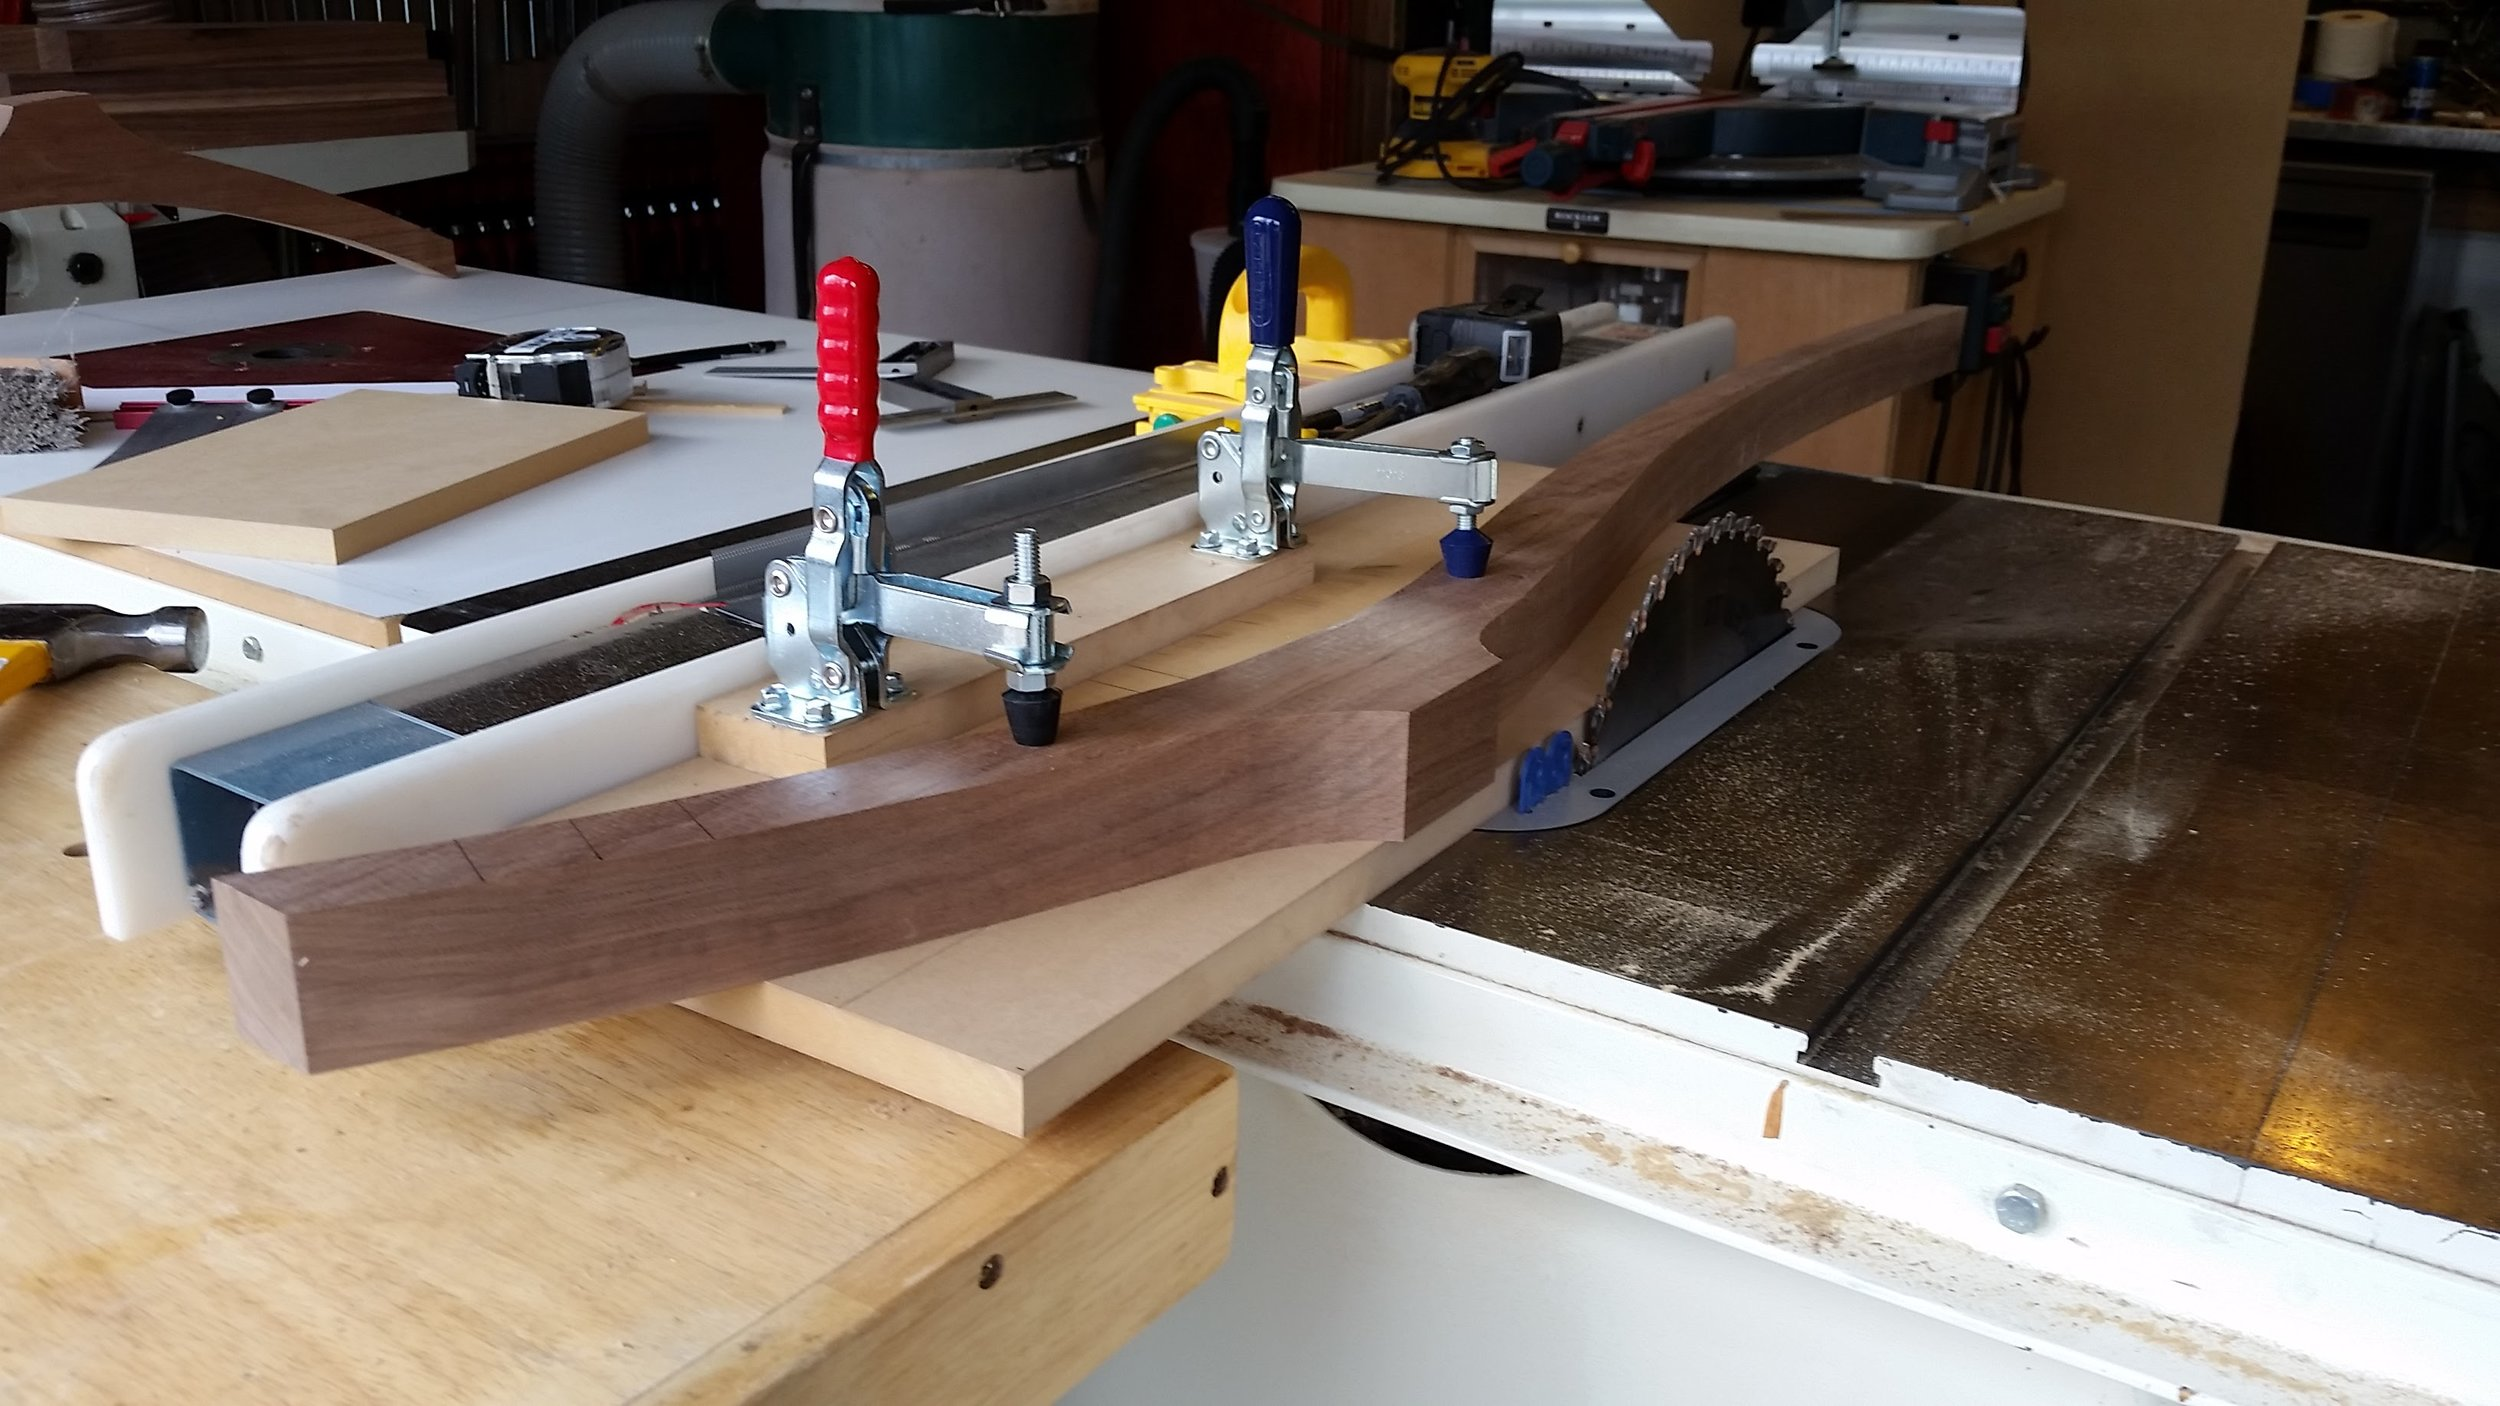 Rear leg clamped in jig and run through the table saw to cut the angle where the seat will join to the rear leg.